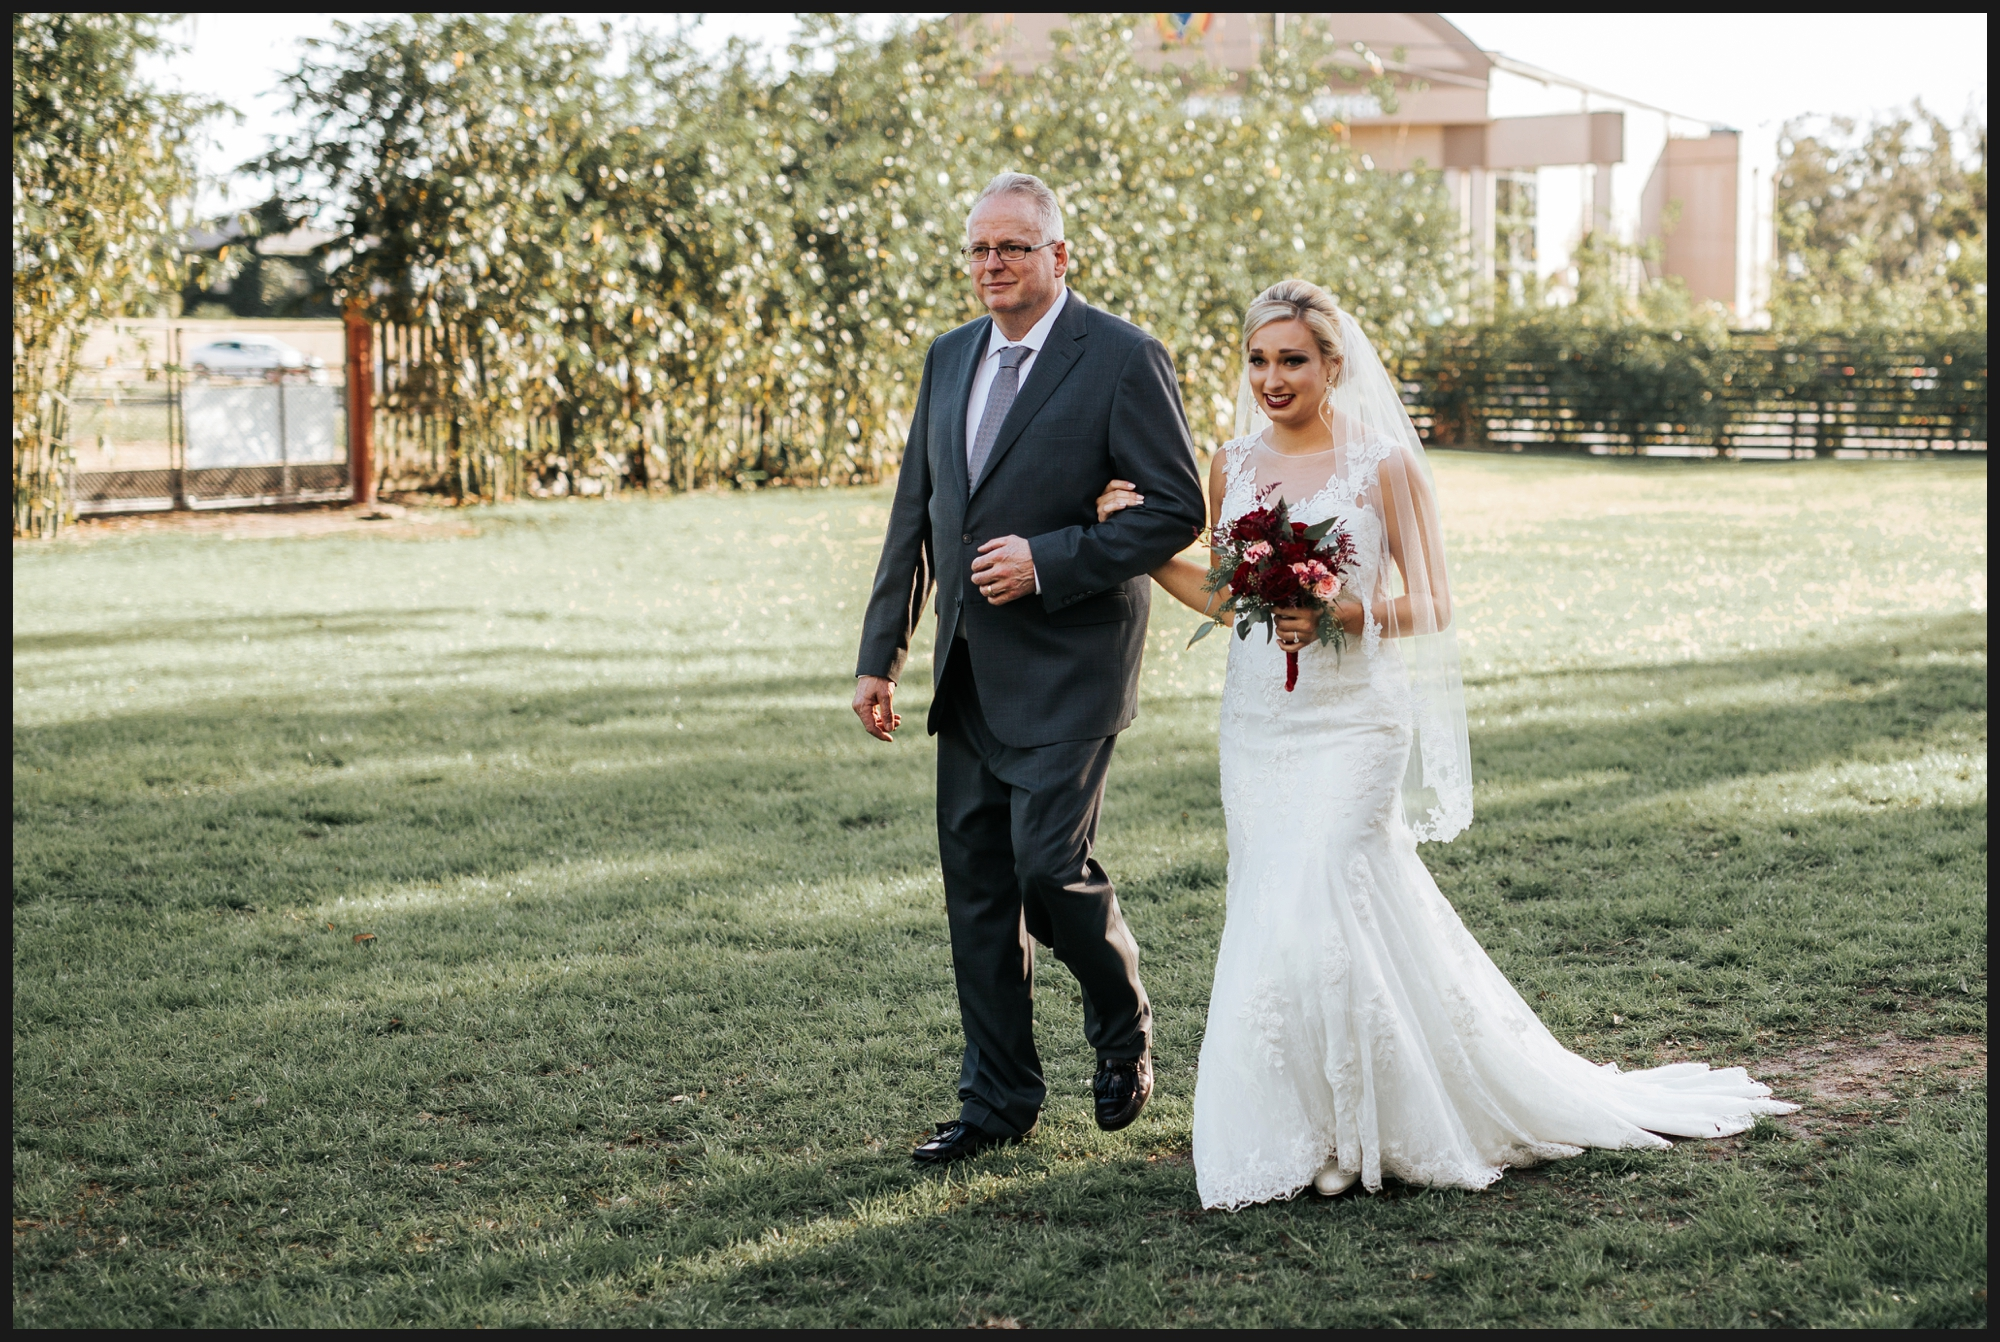 MitchandKatieOrlandoWeddingPhotographer_0058.jpg